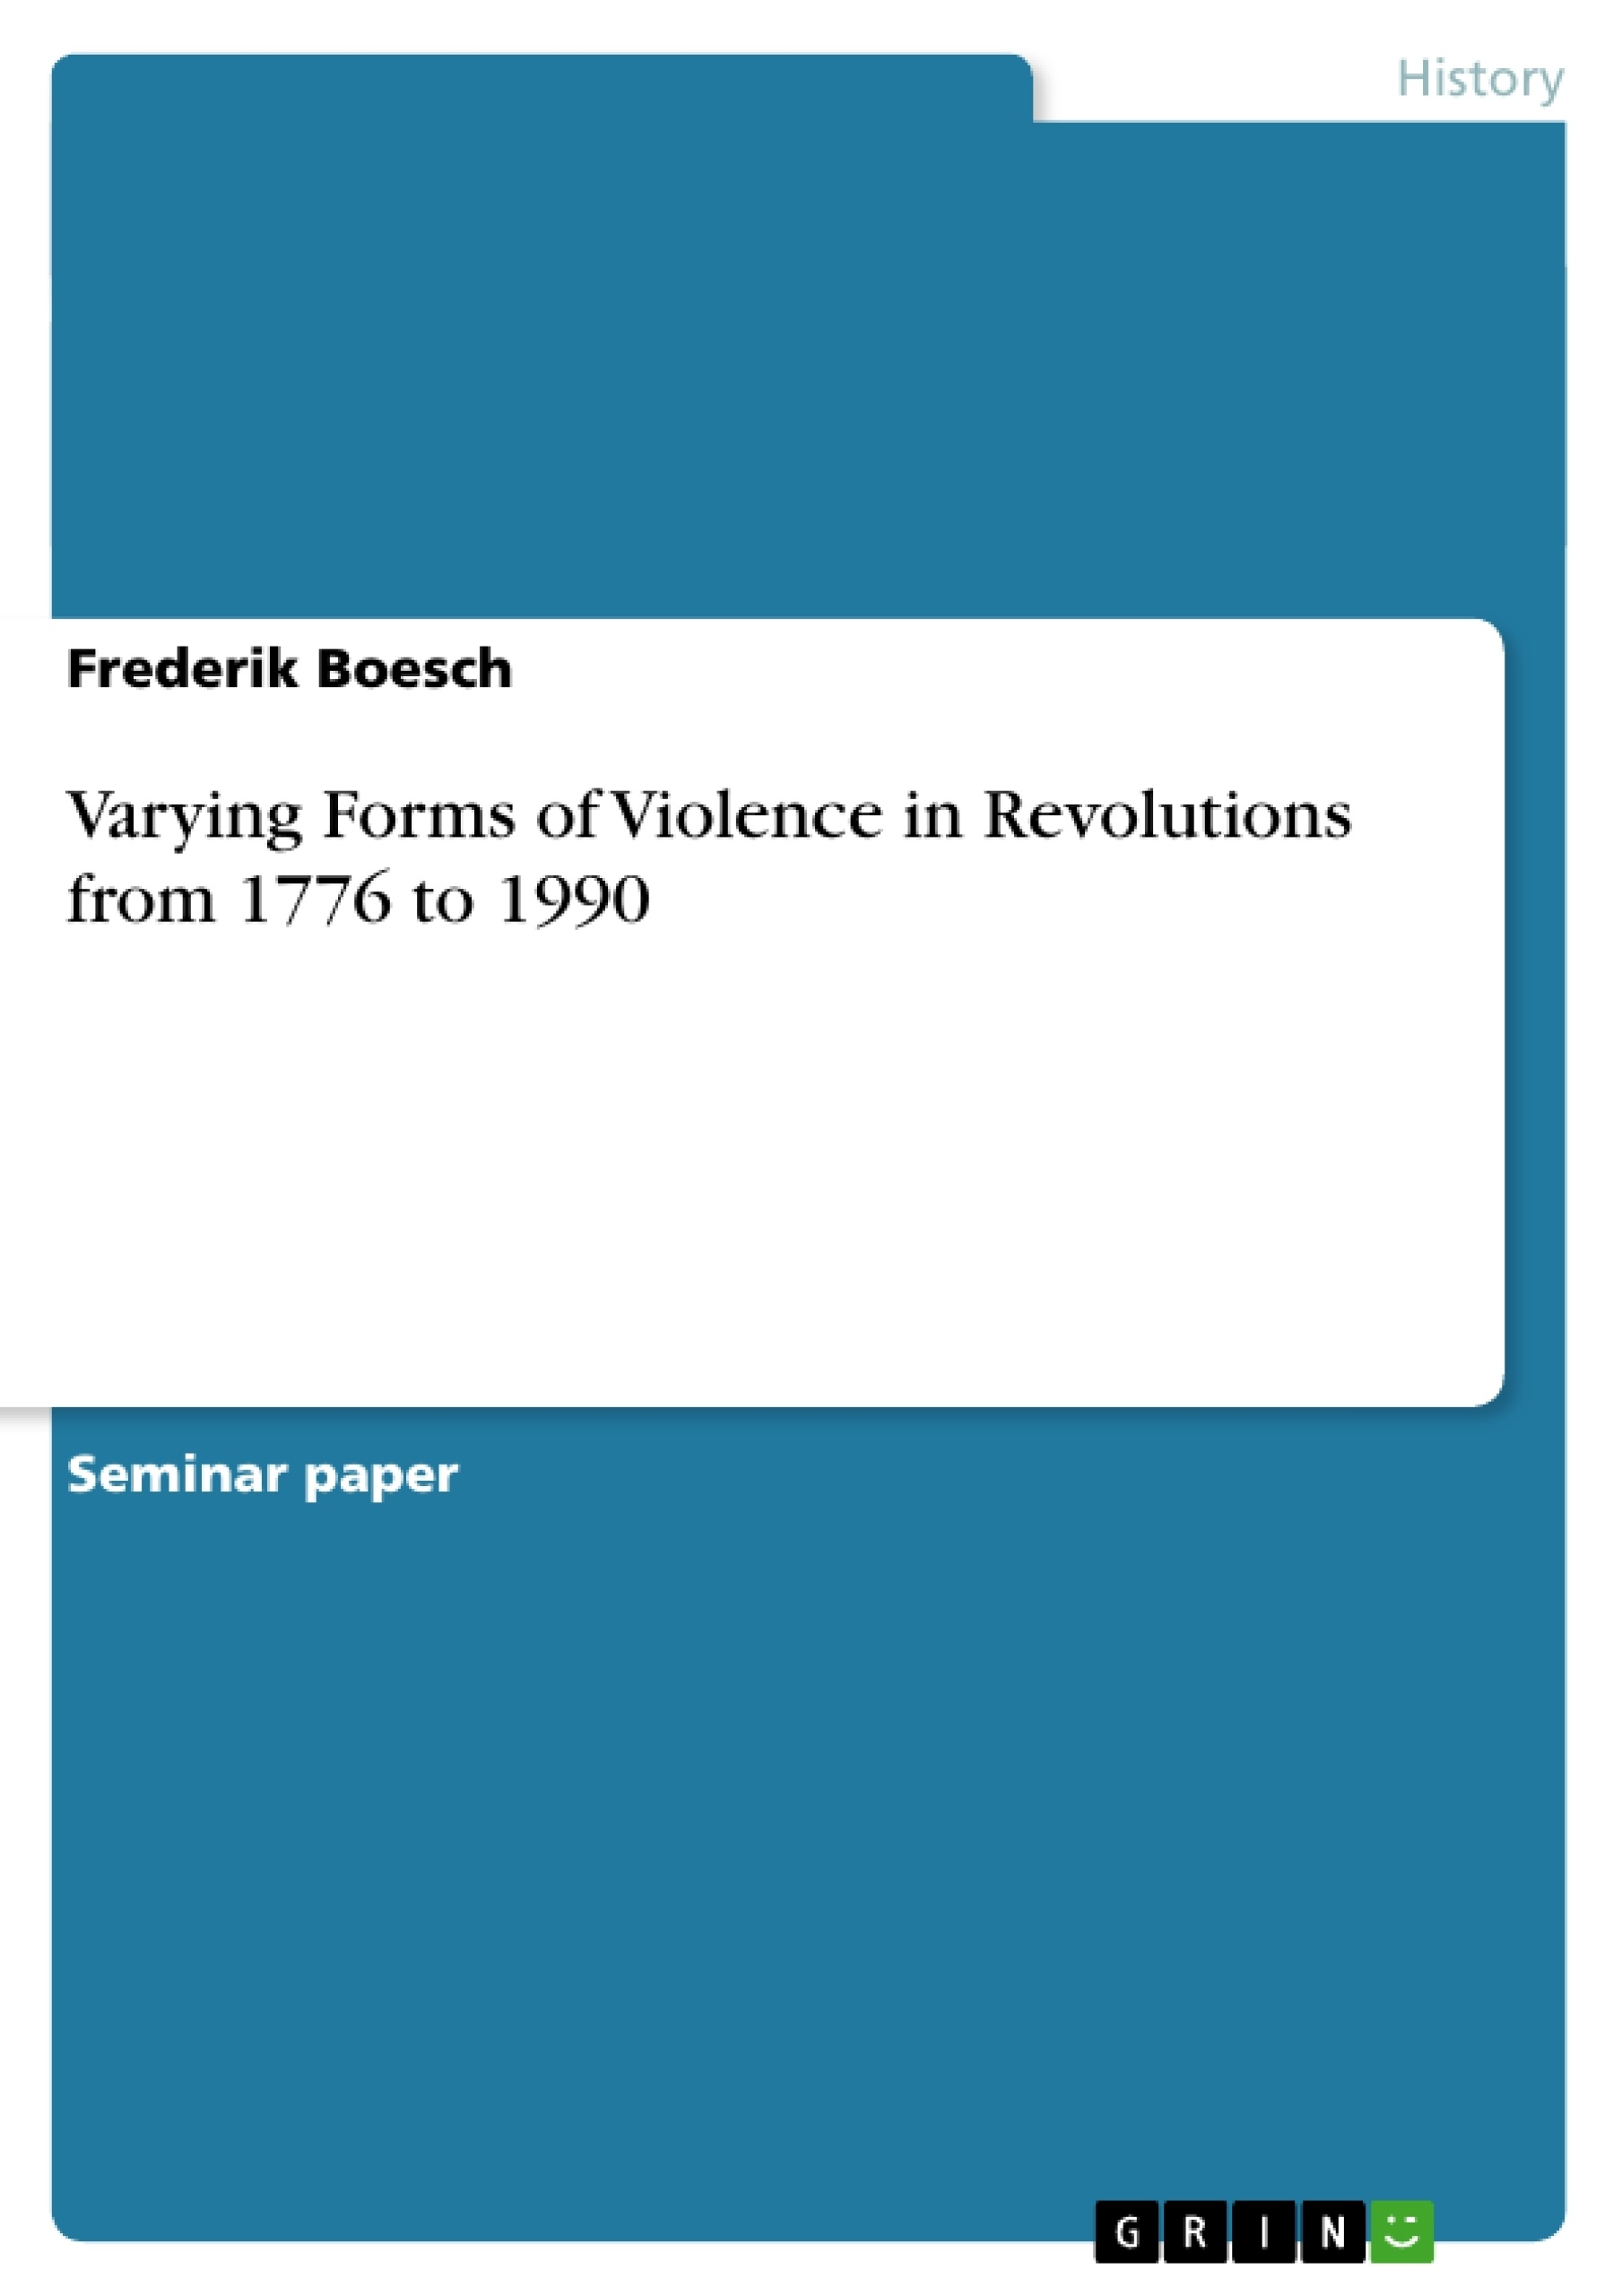 GRIN - Varying Forms of Violence in Revolutions from 1776 to 1990